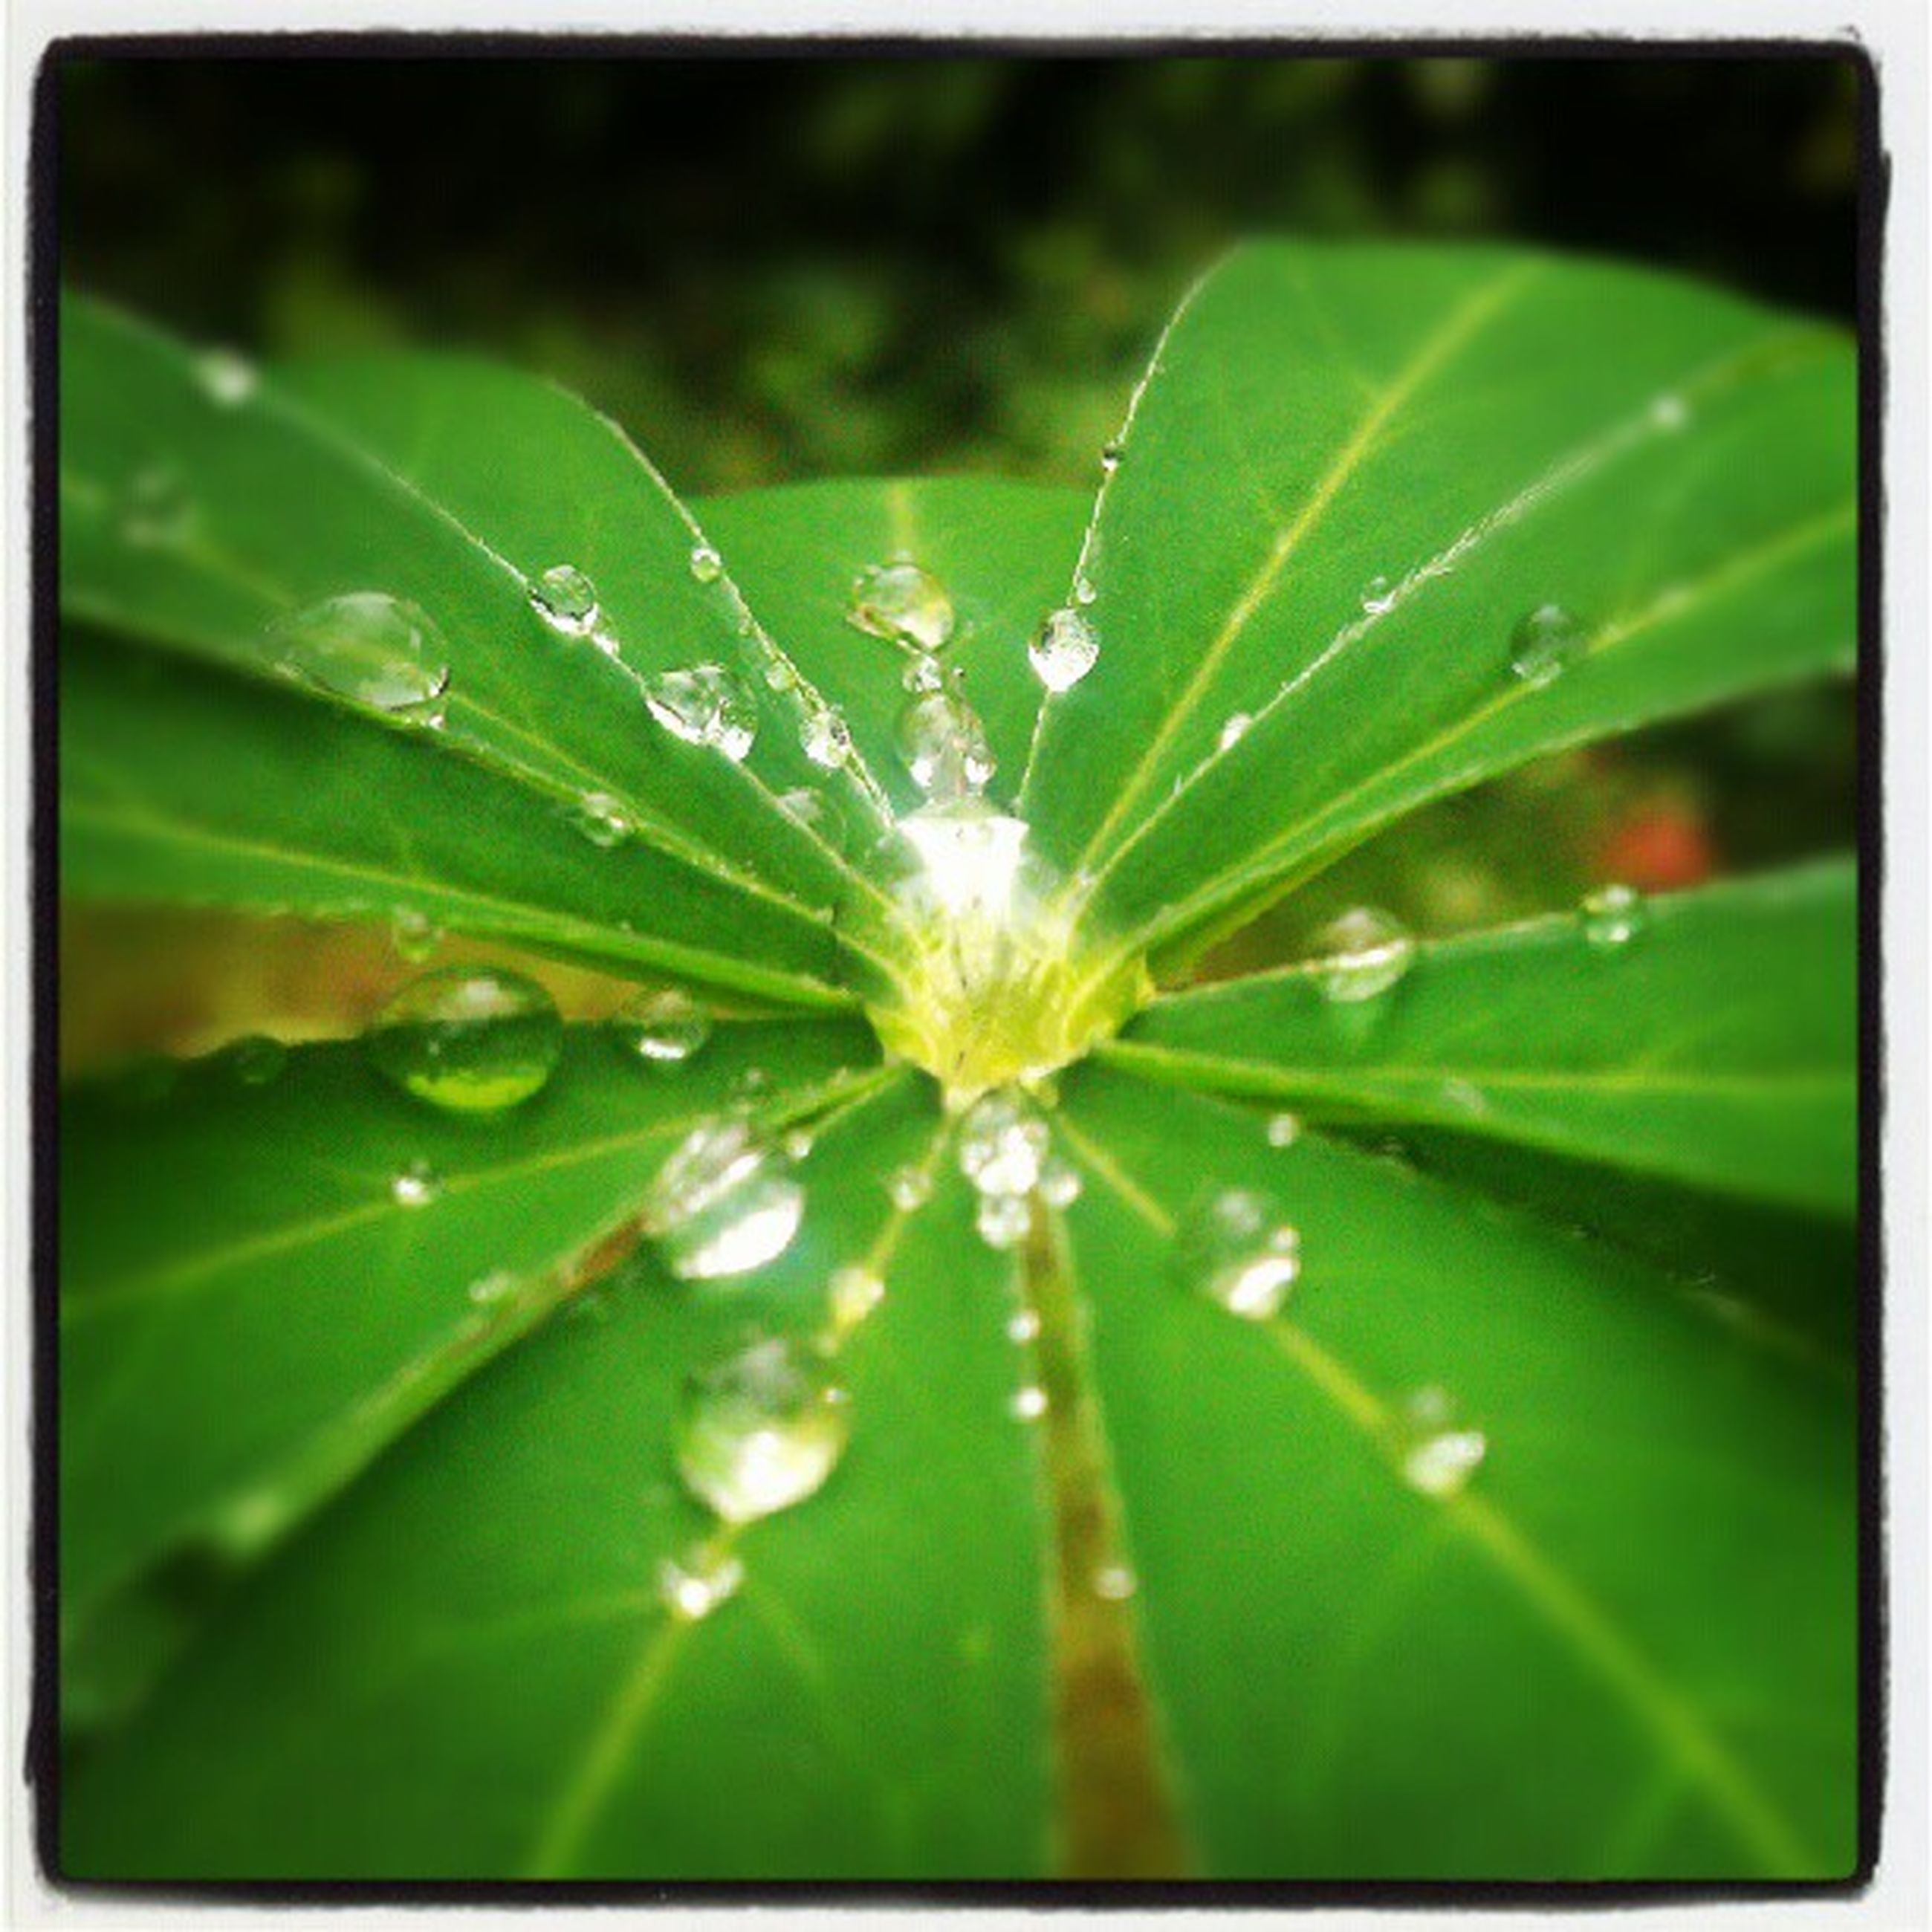 drop, freshness, water, fragility, wet, growth, close-up, dew, leaf, green color, beauty in nature, nature, focus on foreground, raindrop, flower, transfer print, plant, water drop, auto post production filter, selective focus